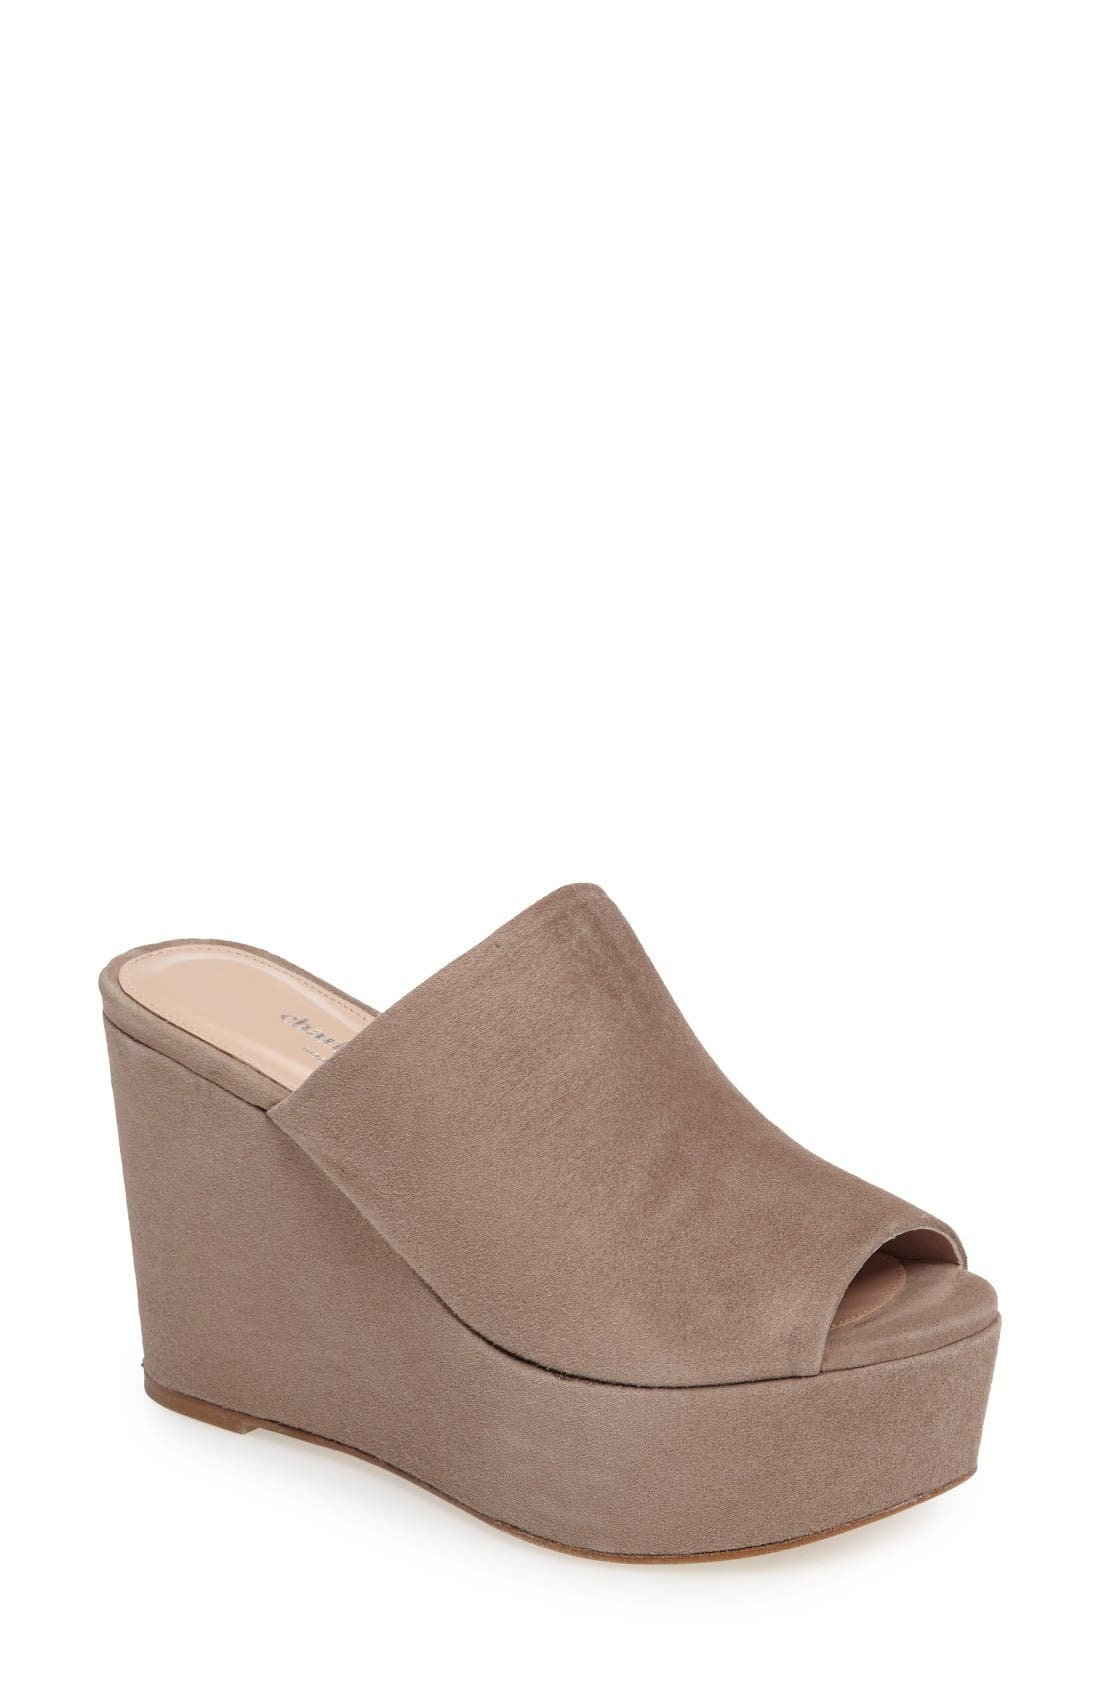 Charles by Charles David Padma Platform Wedge Mule,                         Main,                         color, Truffle Suede